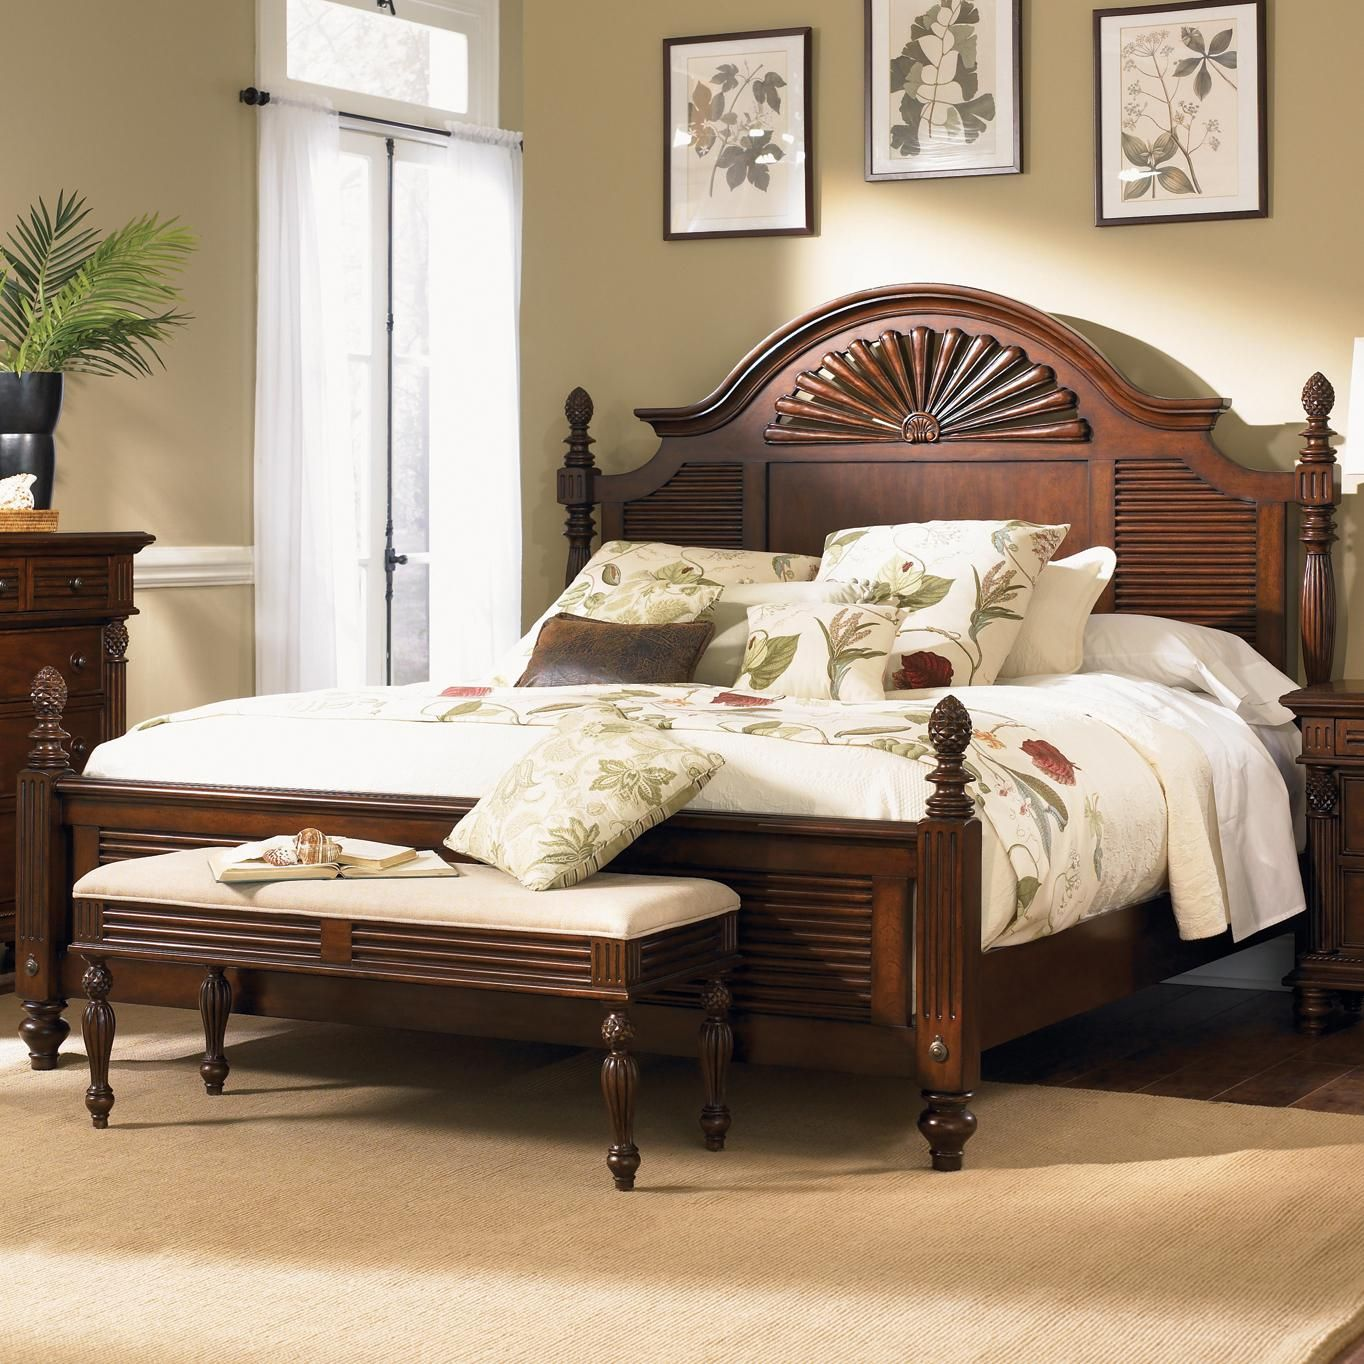 royal landing king poster bed with pineapple accents